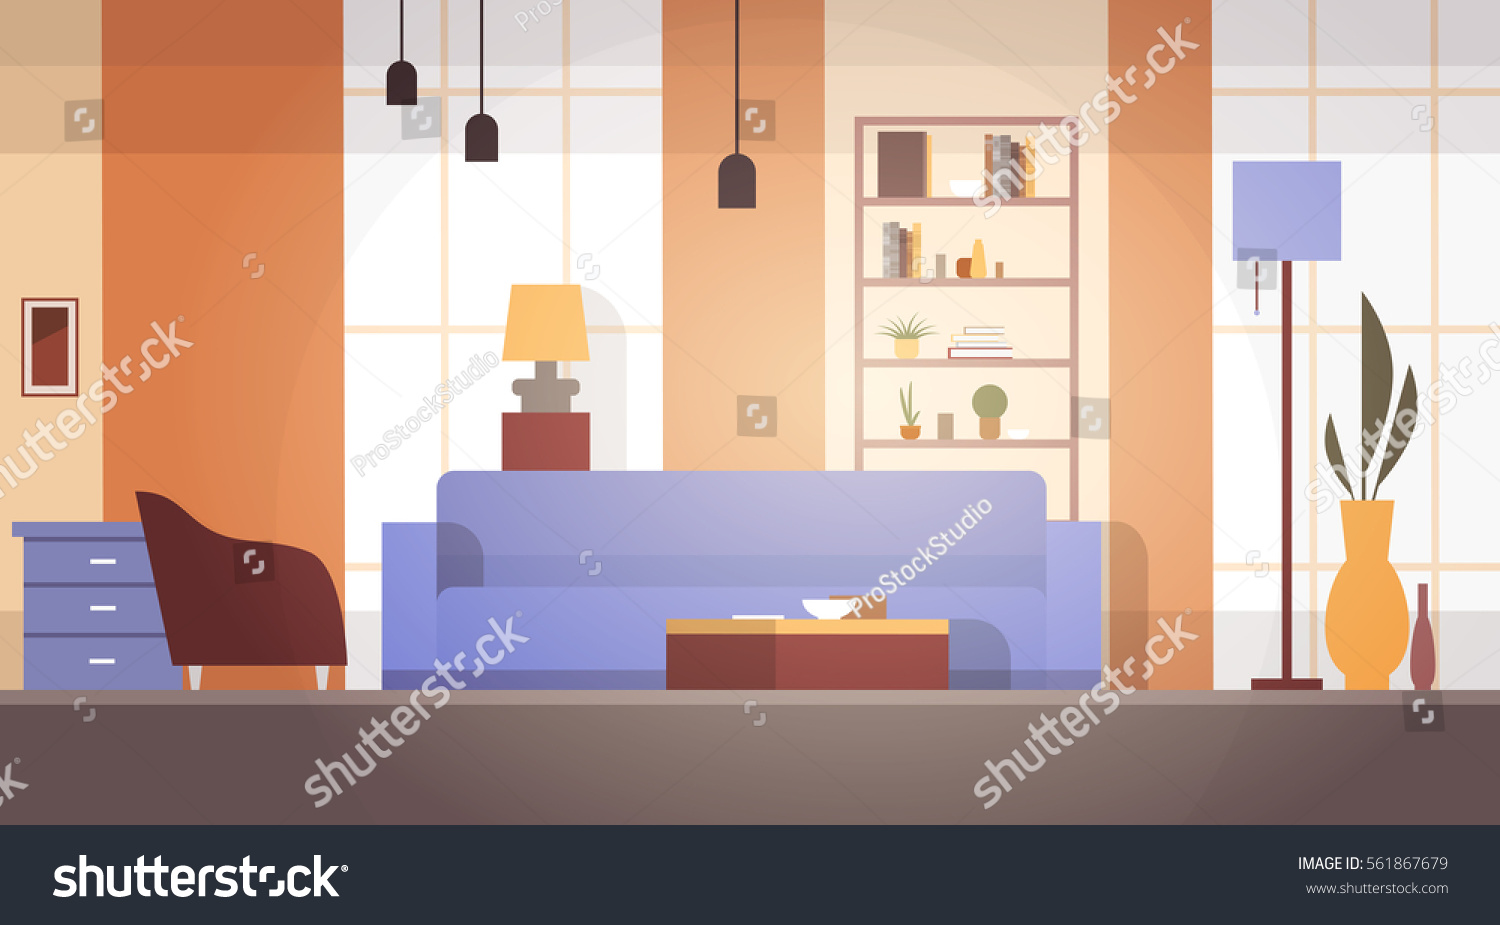 Living room interior home modern apartment 561867679 for Apartment design vector